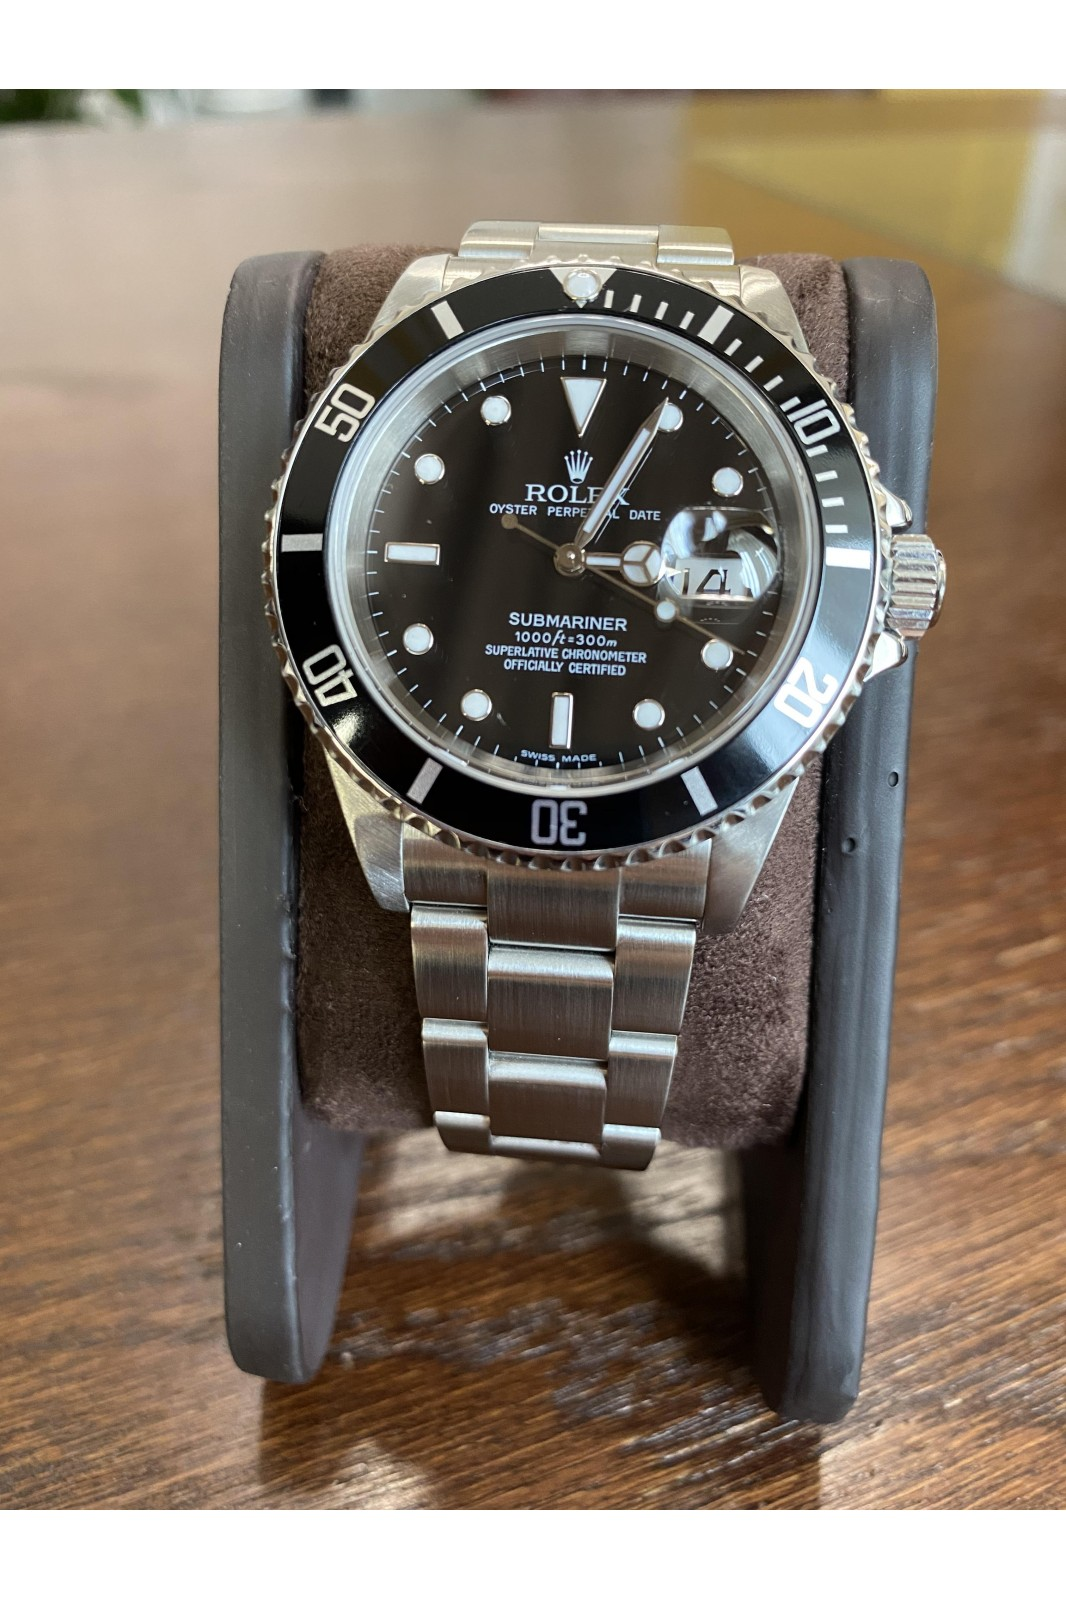 ROLEX SUBMARINER DATE OYSTER PERPETUAL BLACK REF: 16610T